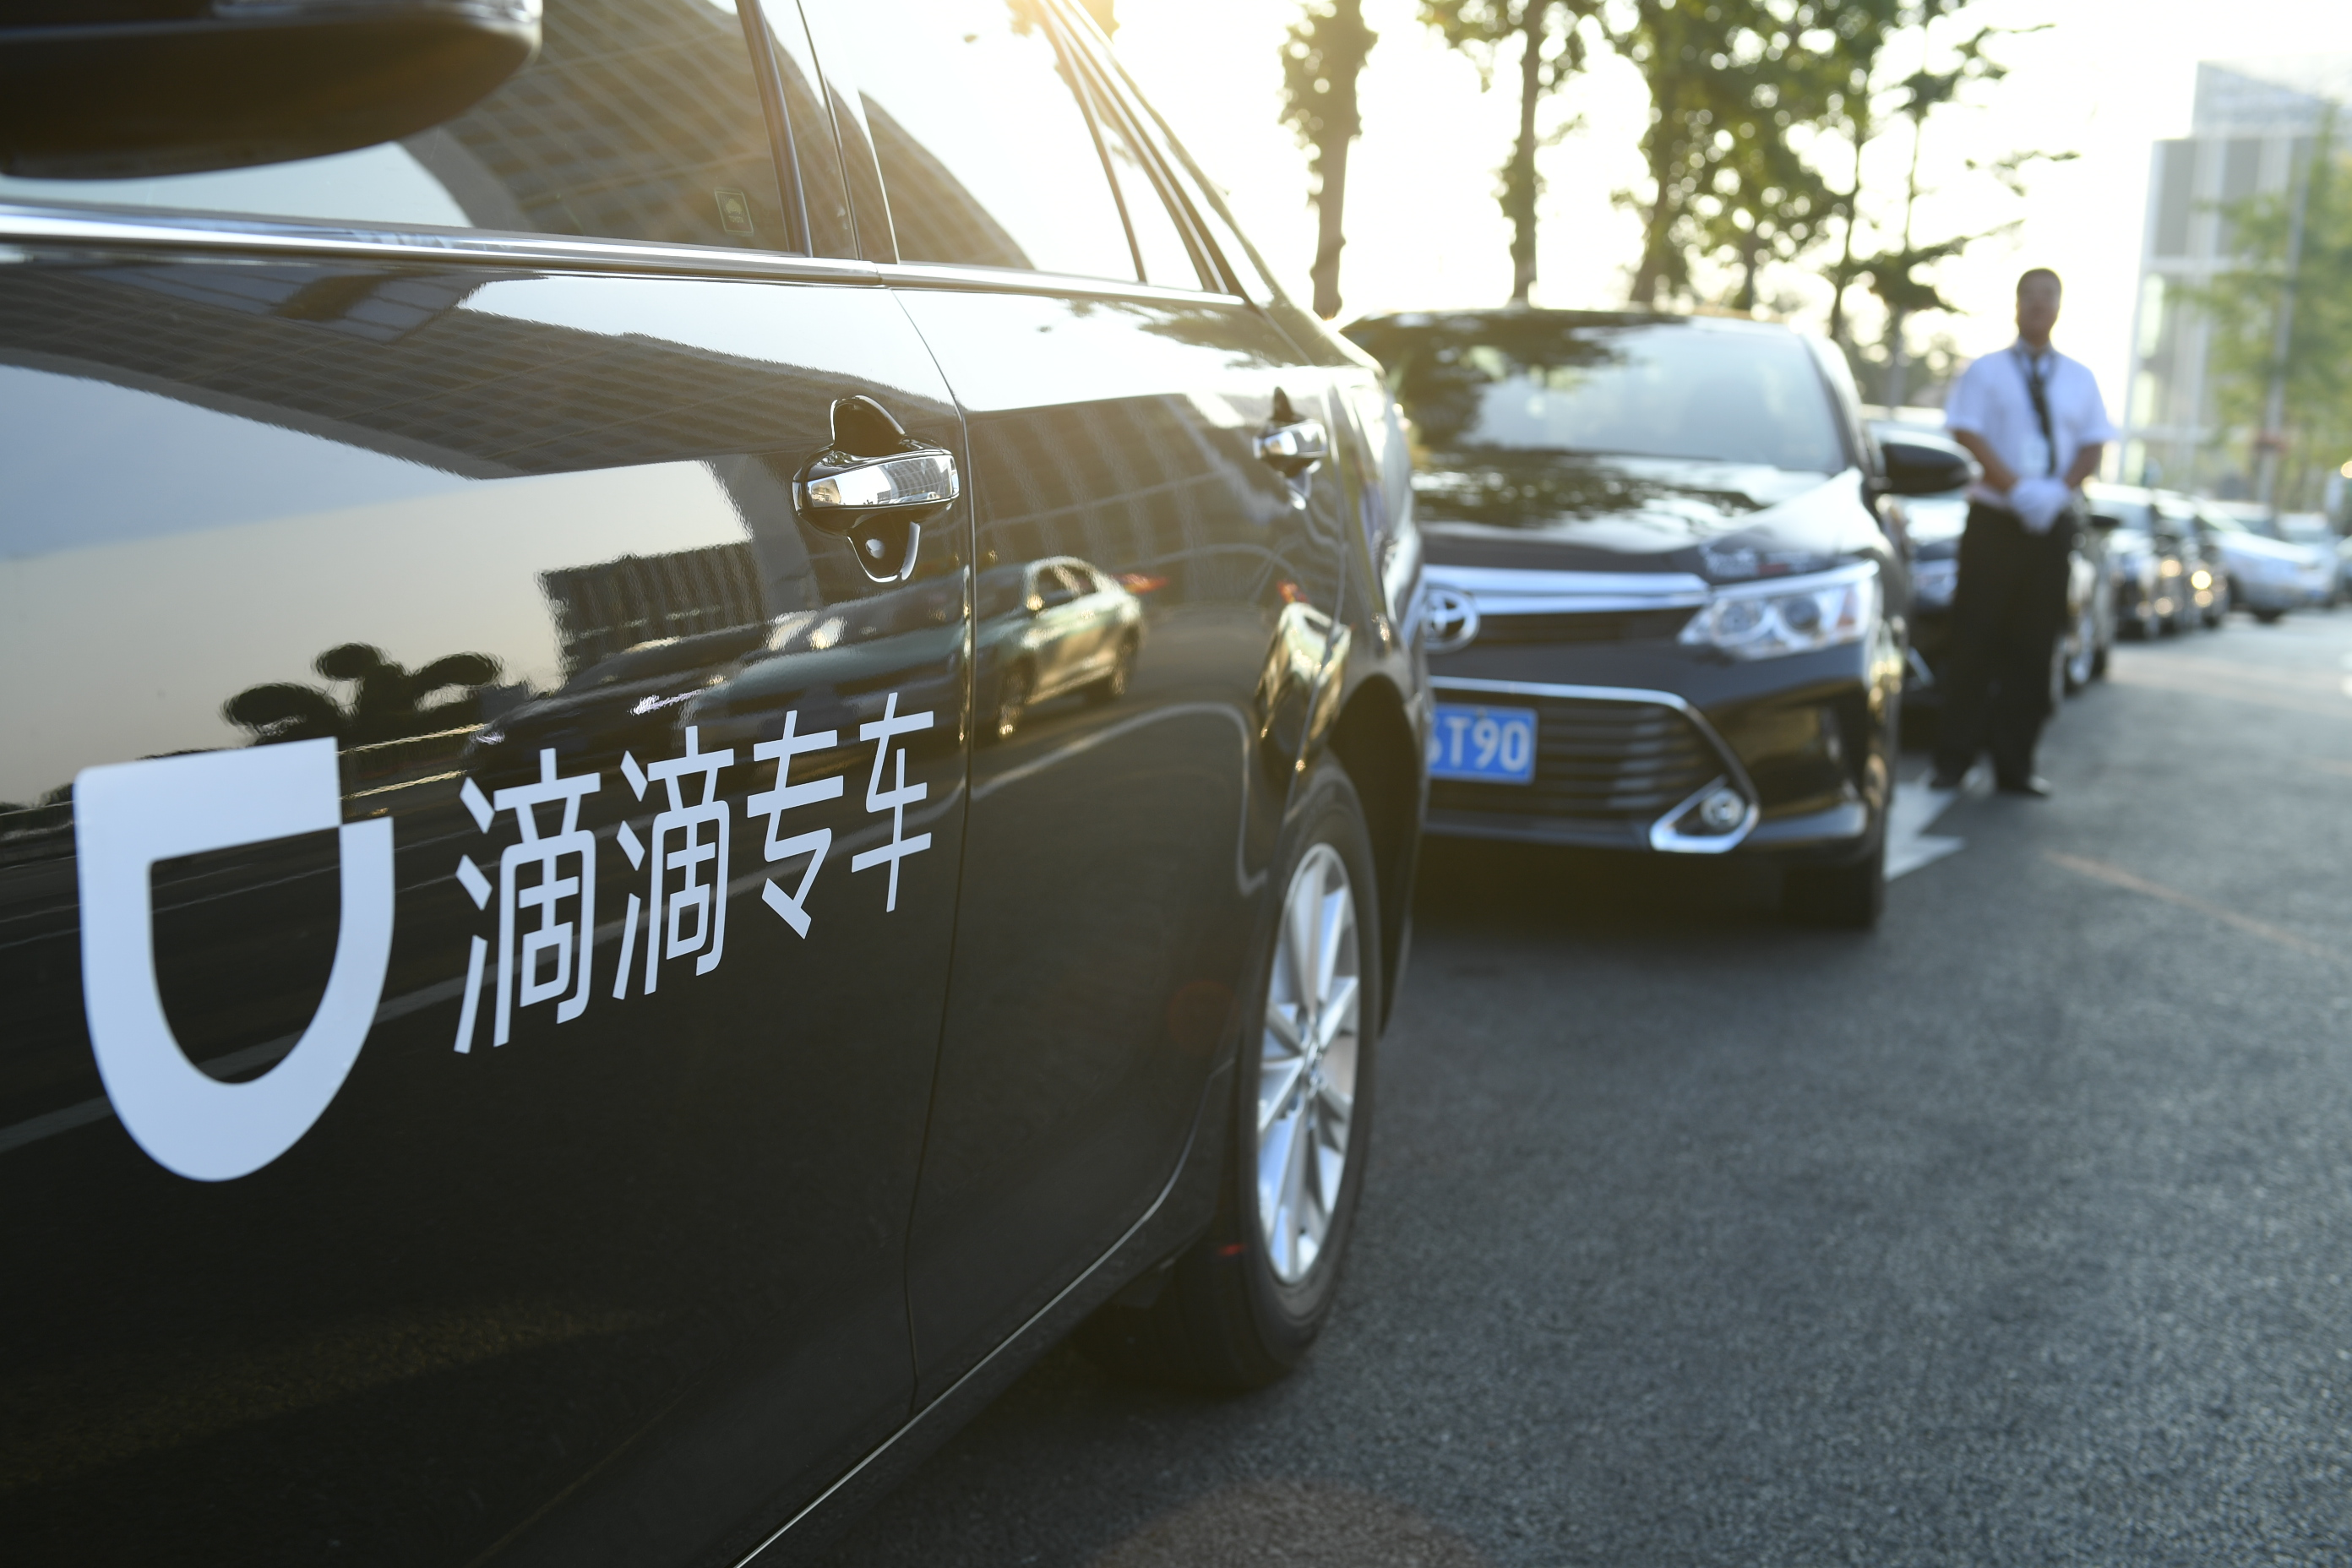 Didi Chuxing cars